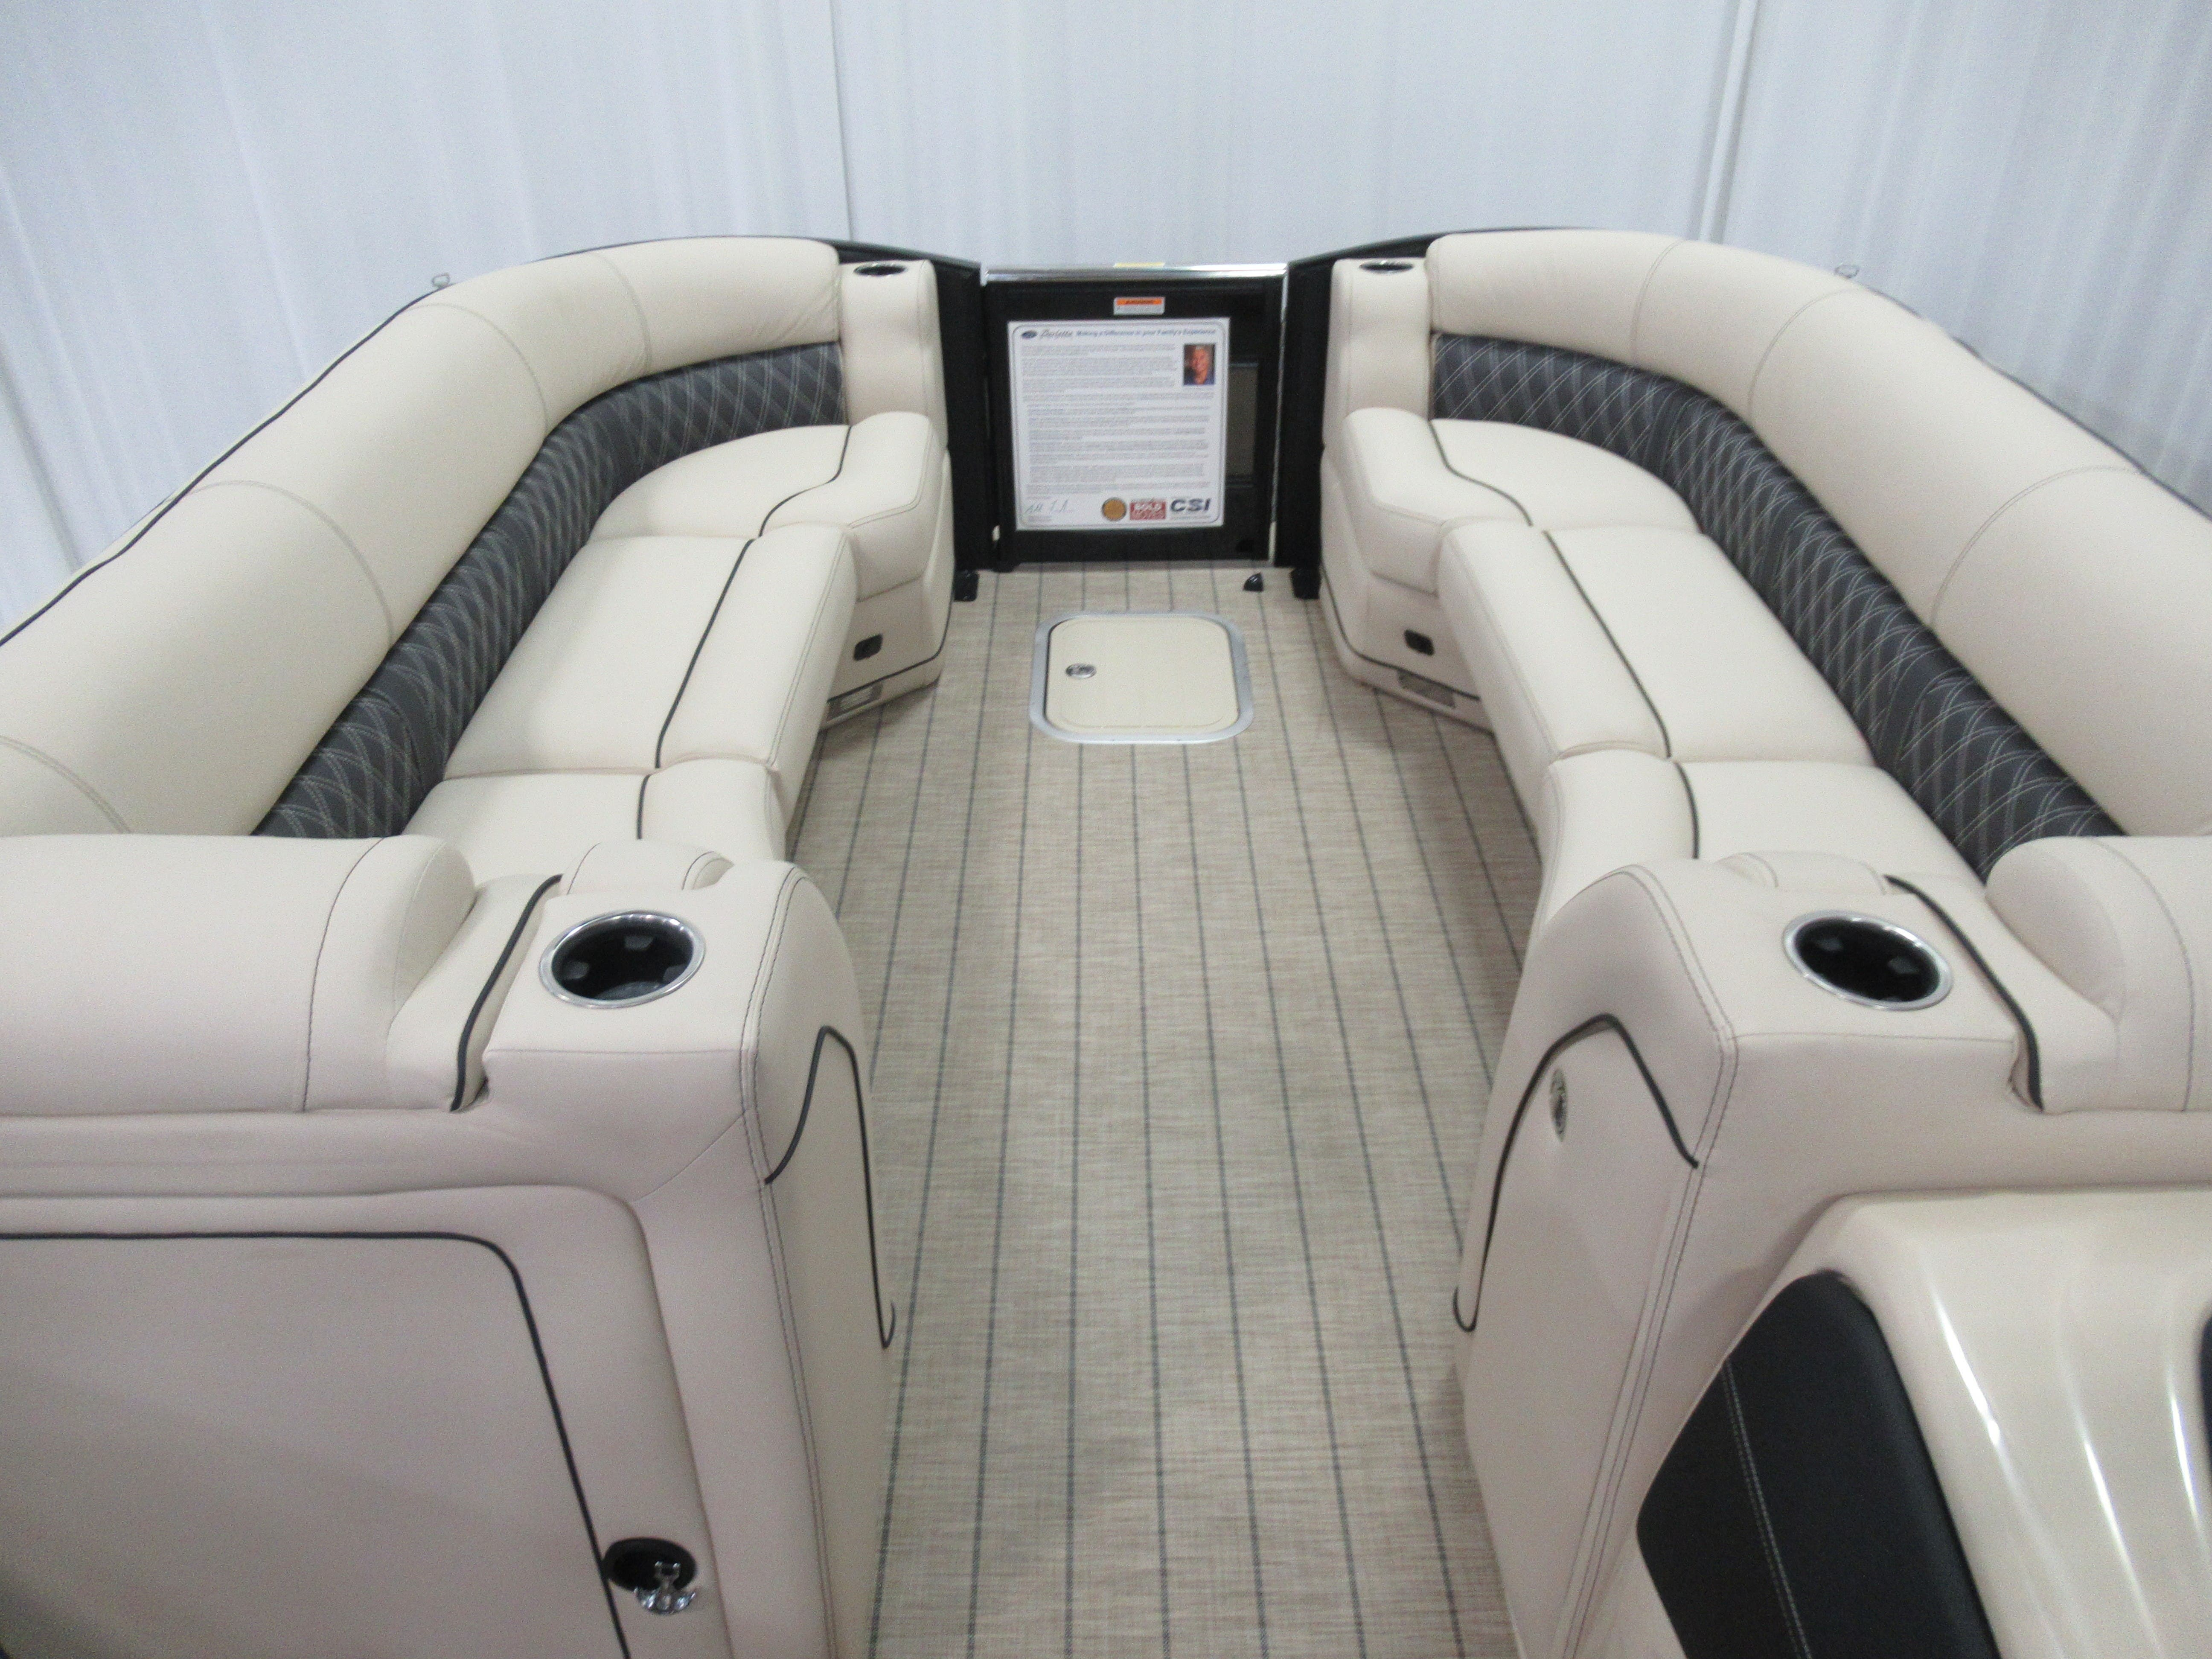 2021 Barletta boat for sale, model of the boat is L25uc & Image # 4 of 11